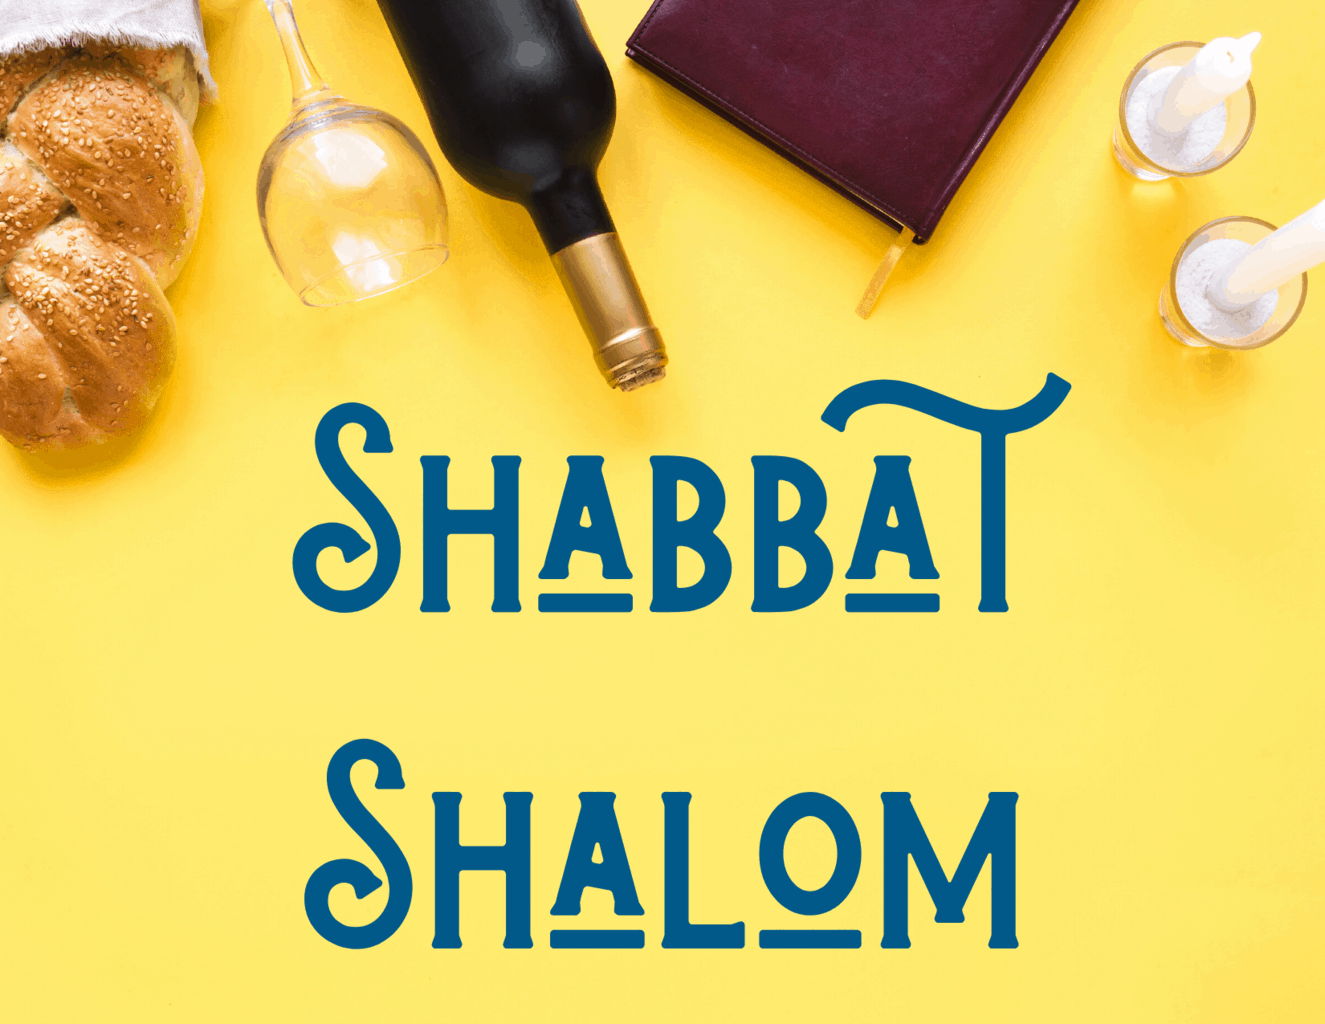 archive-shabbat-sholom-from-laura-linder